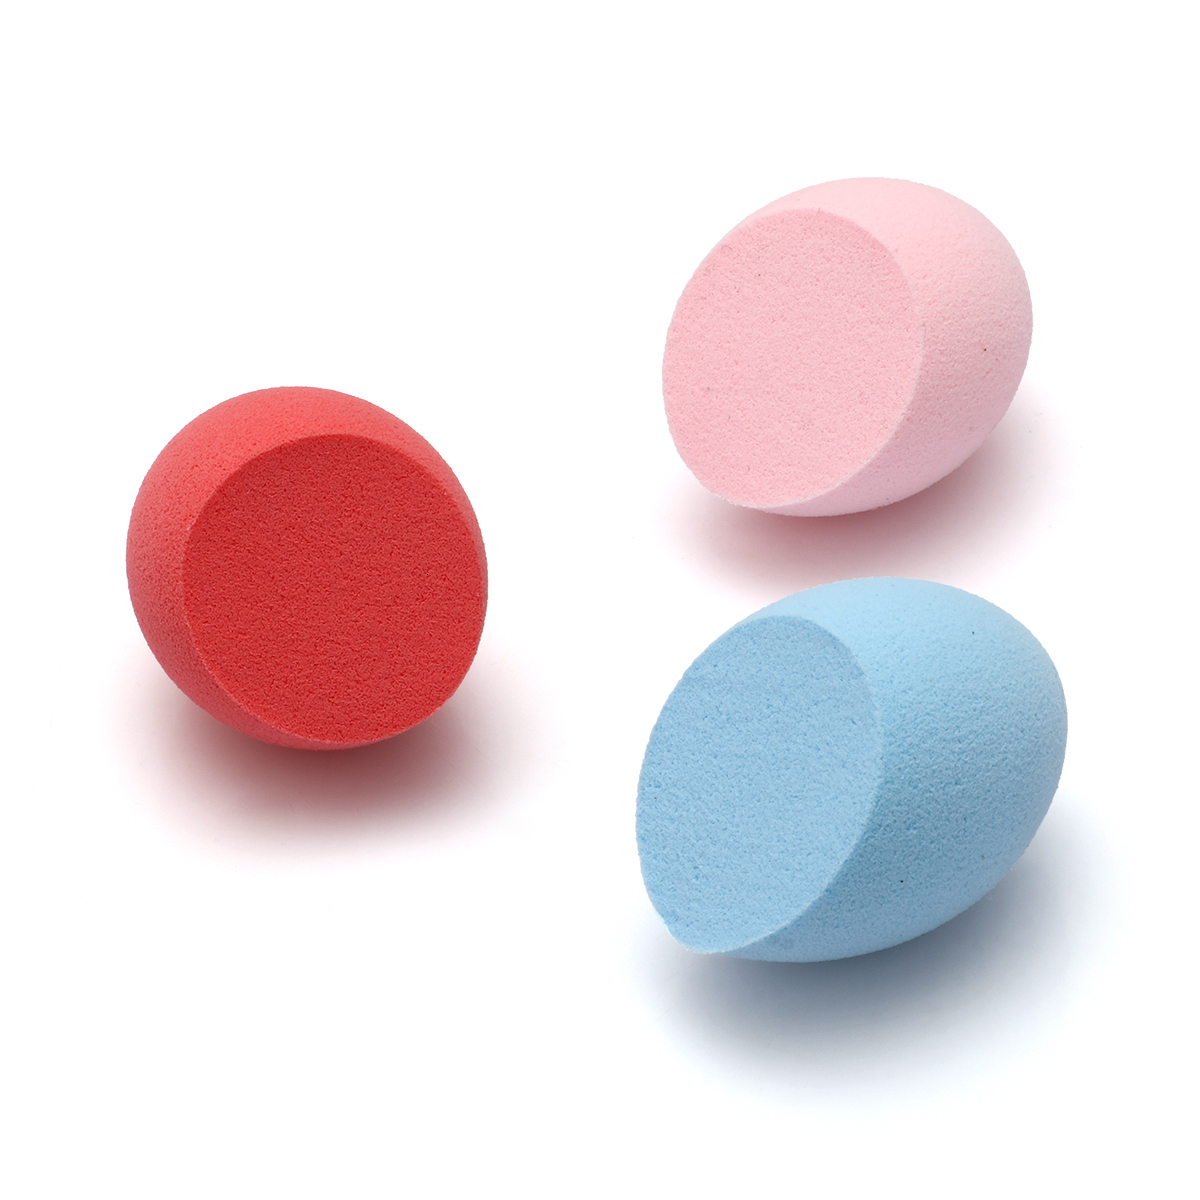 1PC Random Color Smooth Makeup Foundation Sponge Blender Blending Puff Flawless Powder Beauty Tool